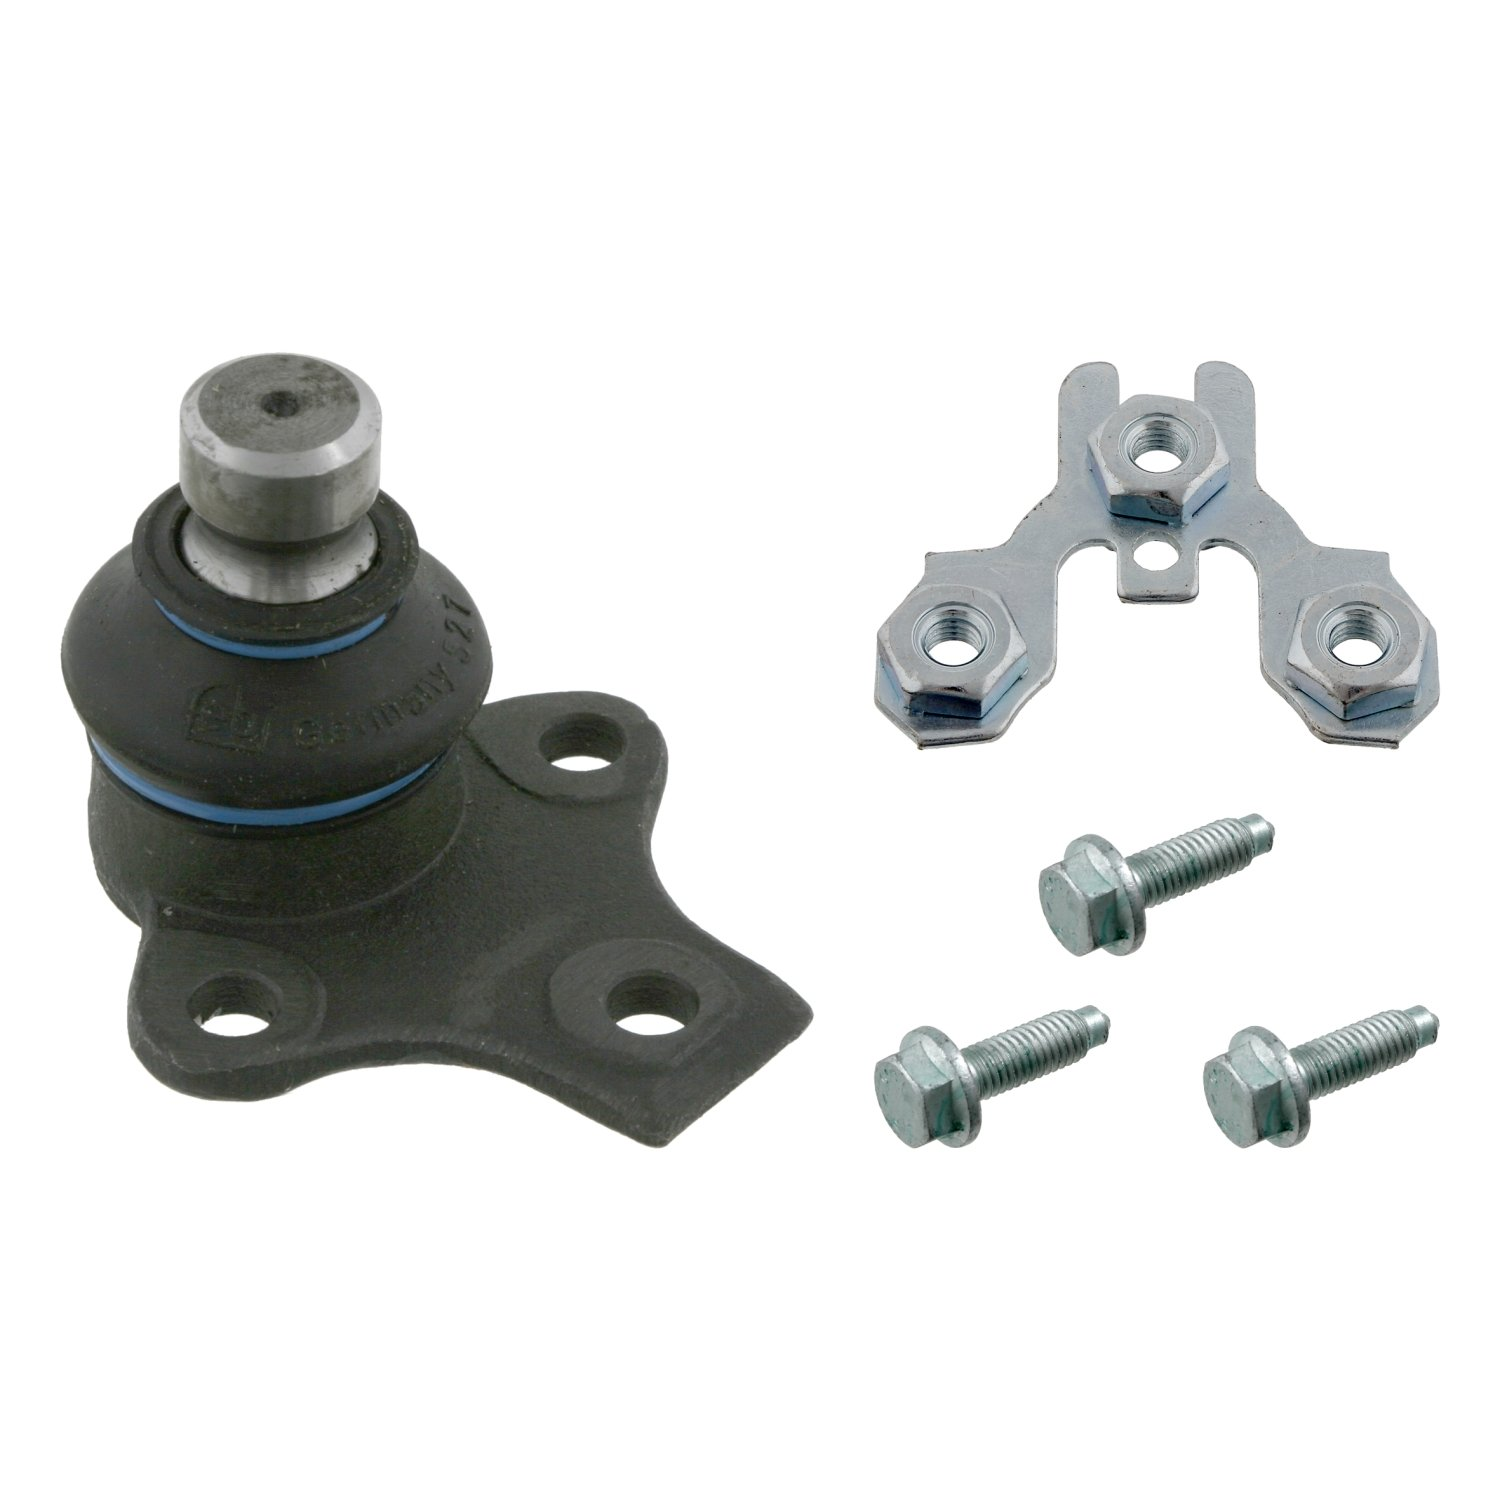 febi bilstein 03548 ball joint with add-on material (front axle both sides, lower)  - Pack of 1